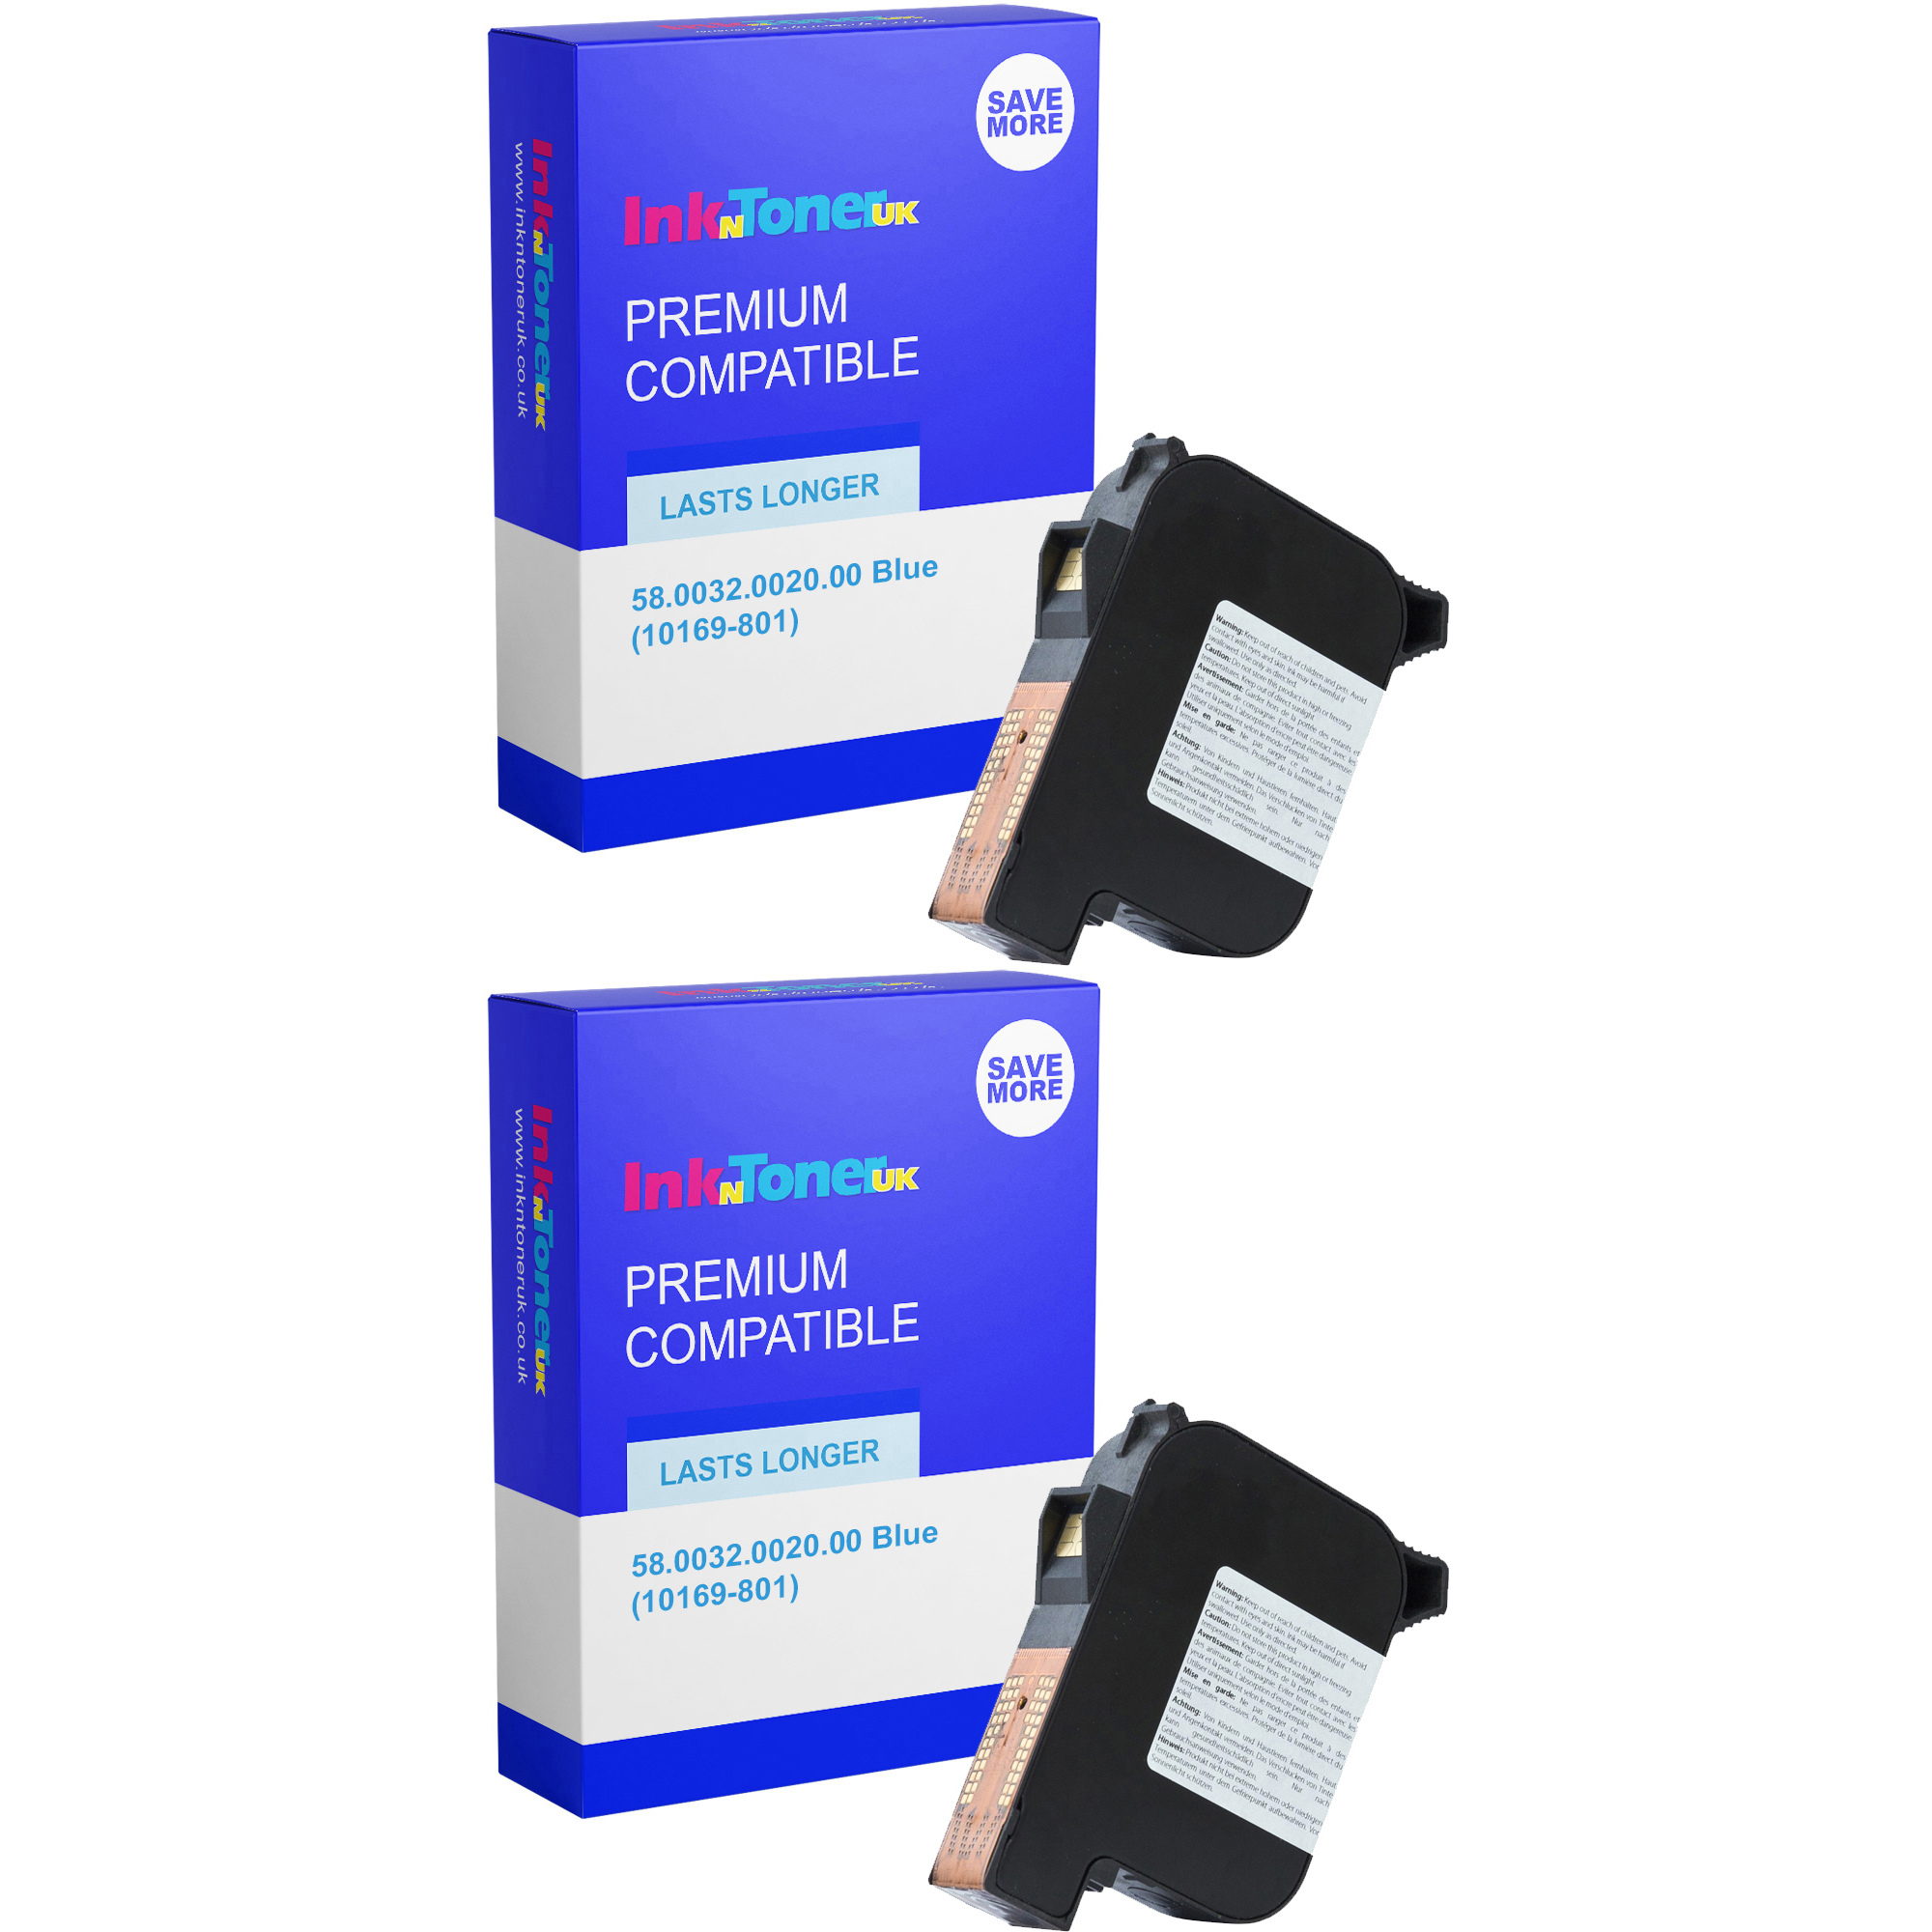 Premium Compatible Francotyp Postalia 58.0032.0020.00 Blue Twin Pack Franking Ink Cartridges (10169-801)